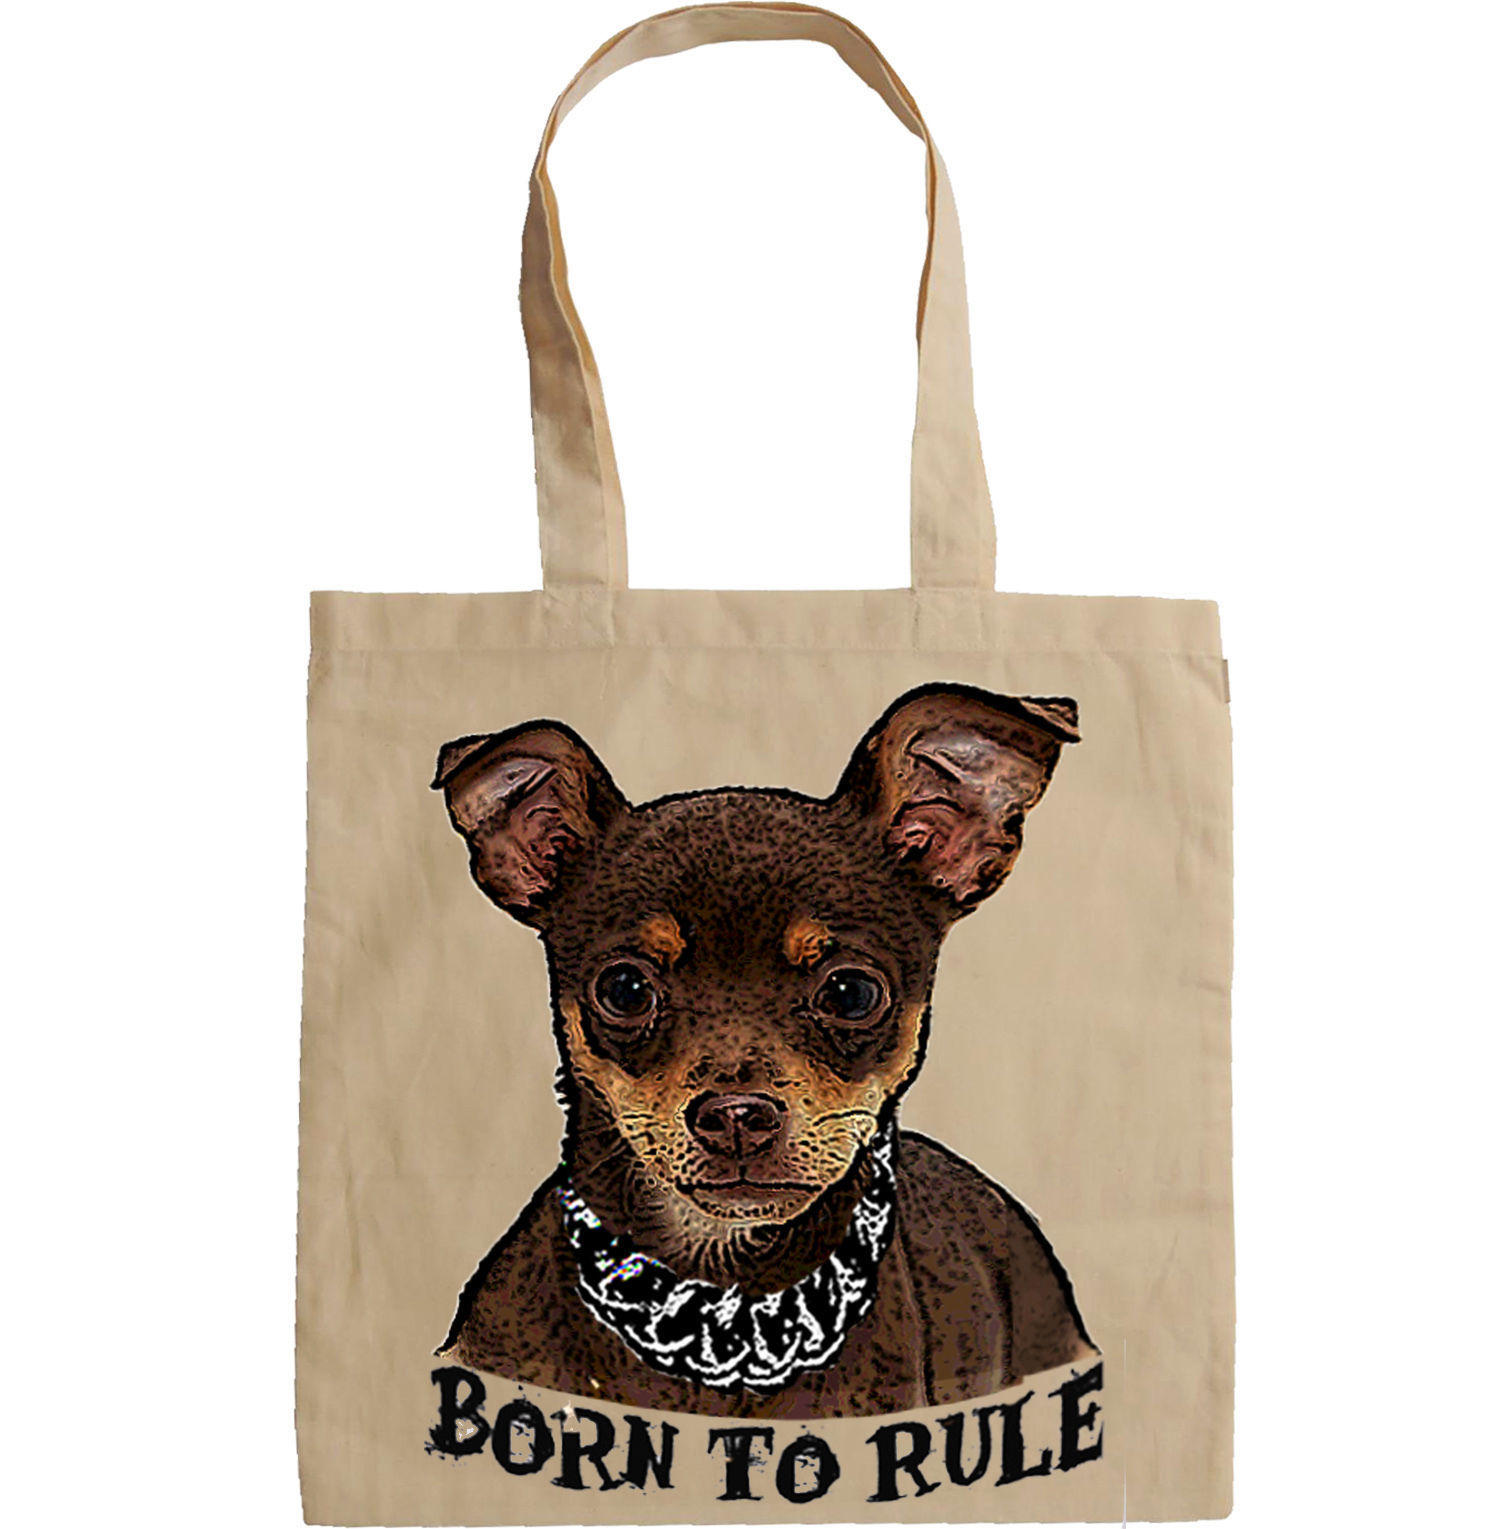 CHIHUAHUA  BORN TO RULE -  NEW AMAZING GRAPHIC HAND BAG/TOTE BAG